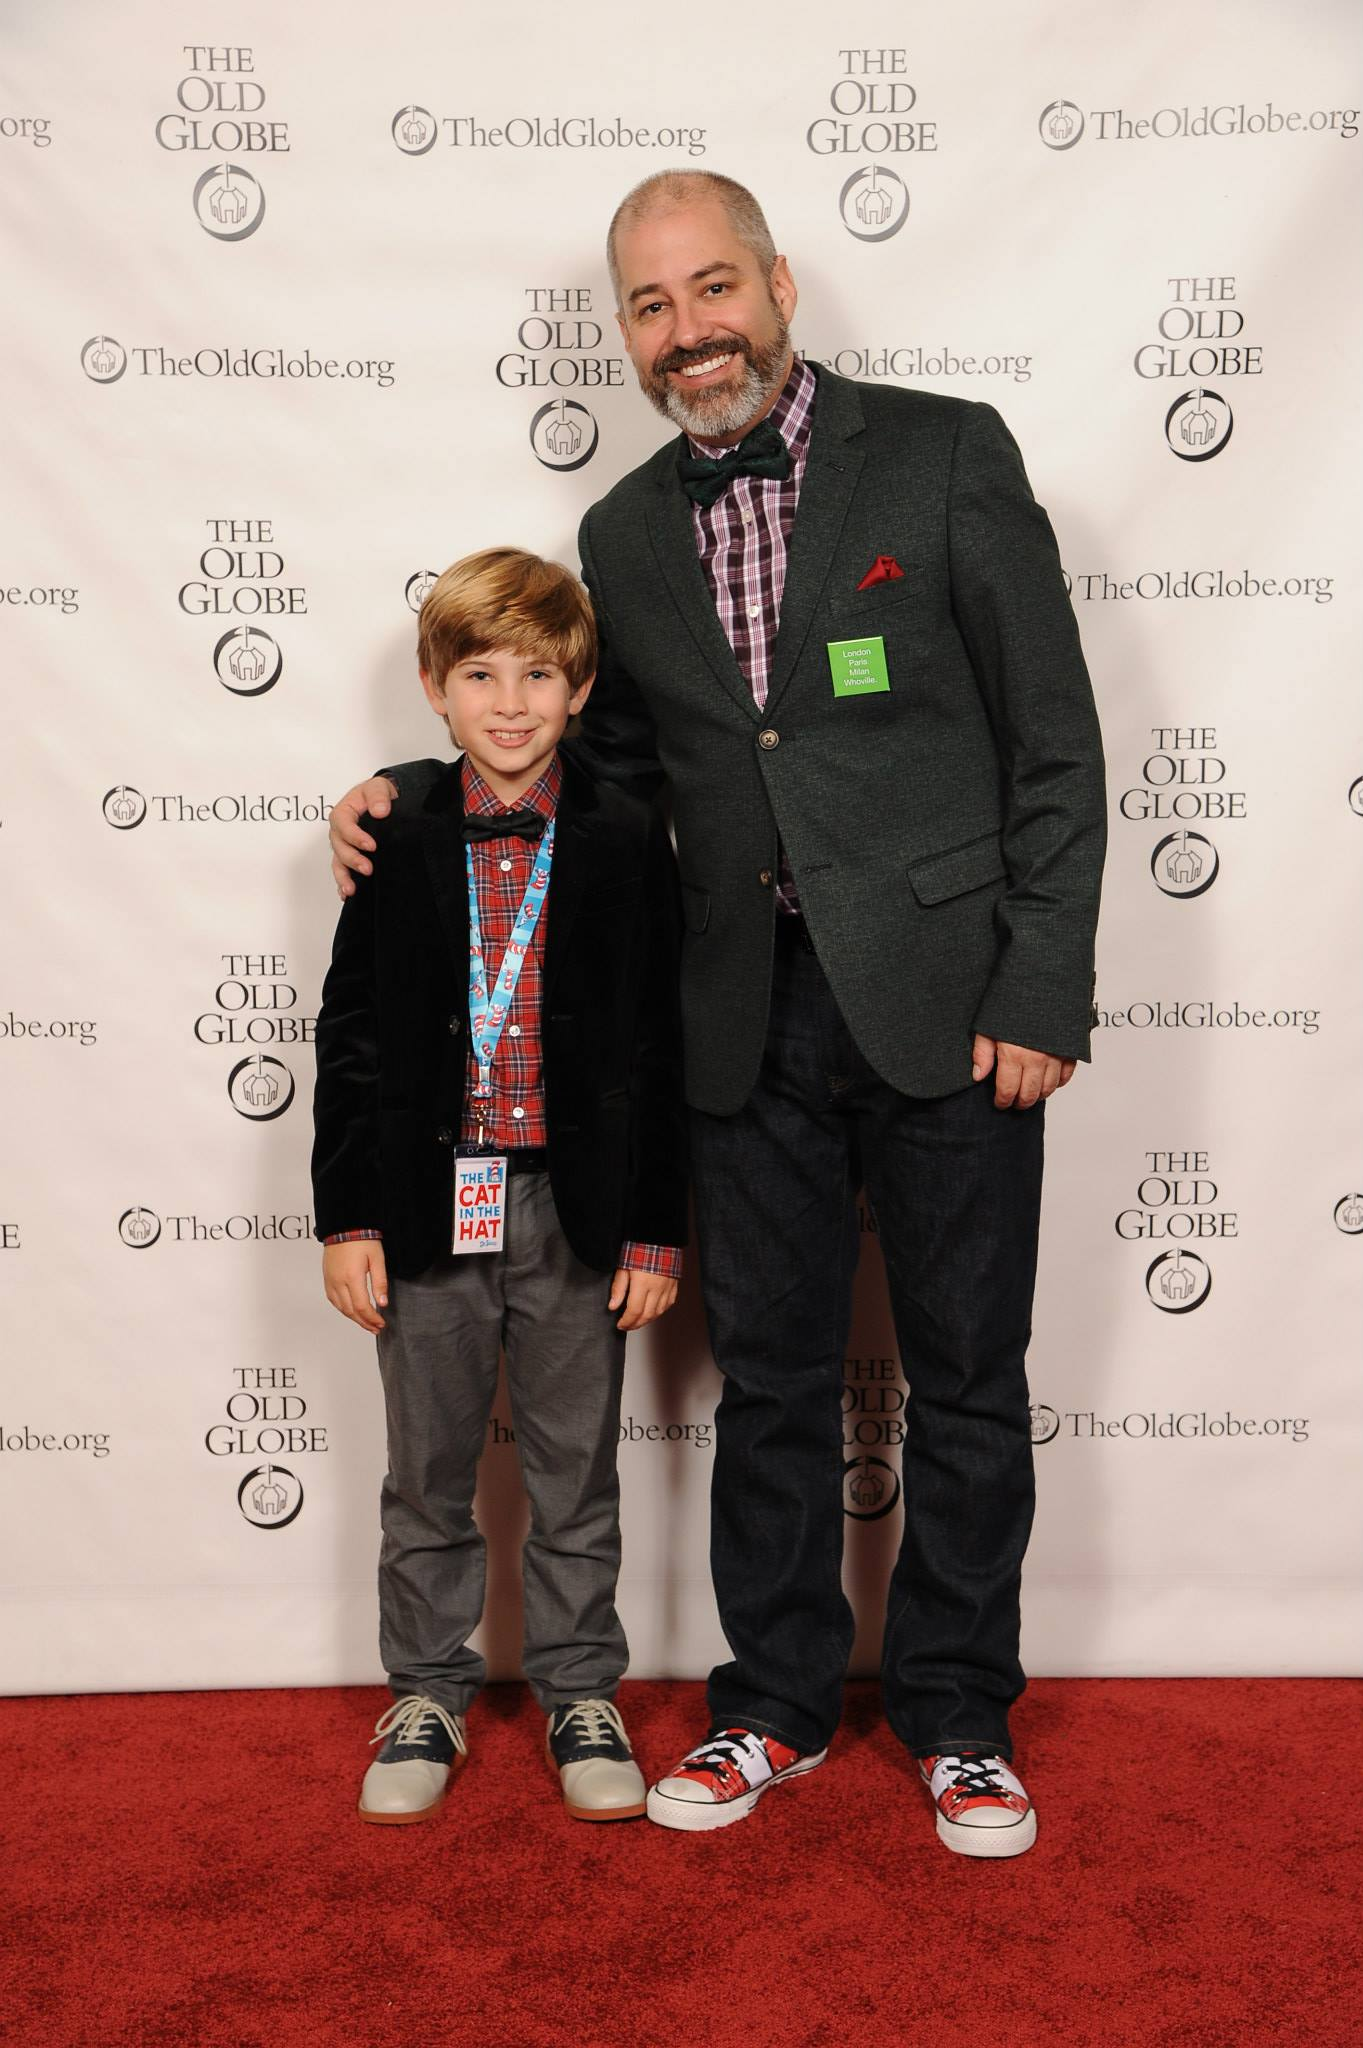 Noah and James Vasquez (Director of How the Grinch Stole Christmas) - Photo by Douglas Gates.